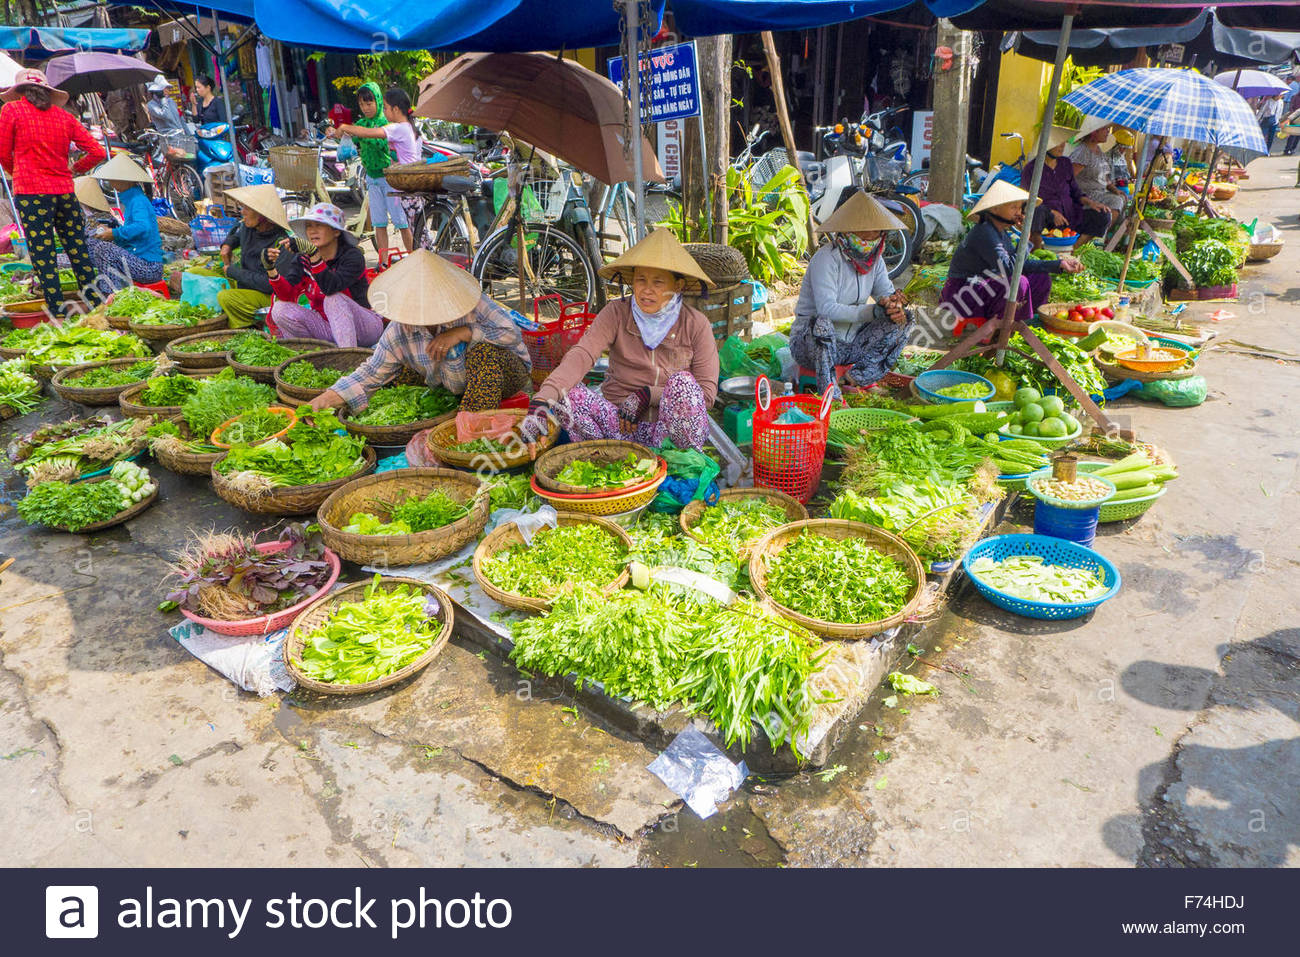 Women selling vegetables at street market, Hoi An, Quang Nam Province, Vietnam - Stock Image